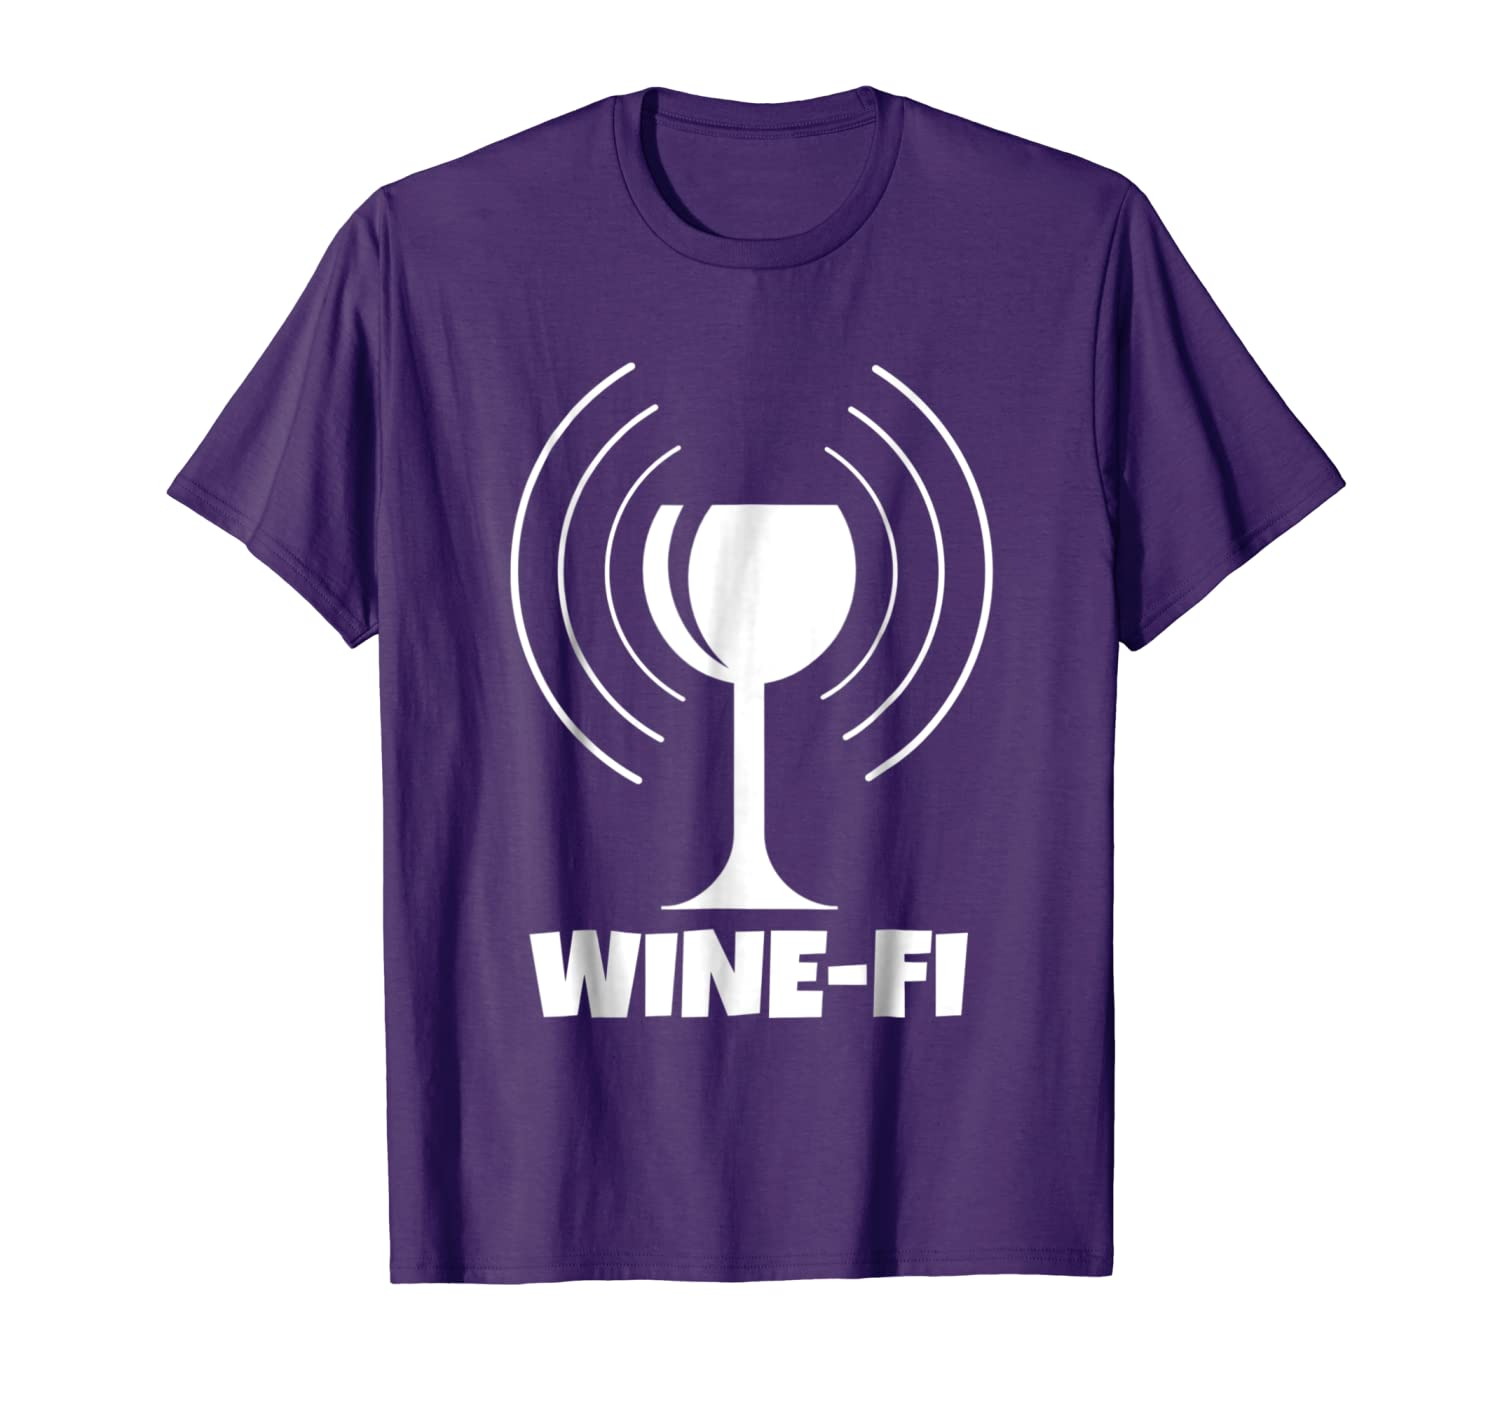 Wine-Fi Zone Funny Wine Glass and WiFi Waves T-Shirt (More Colors Available)